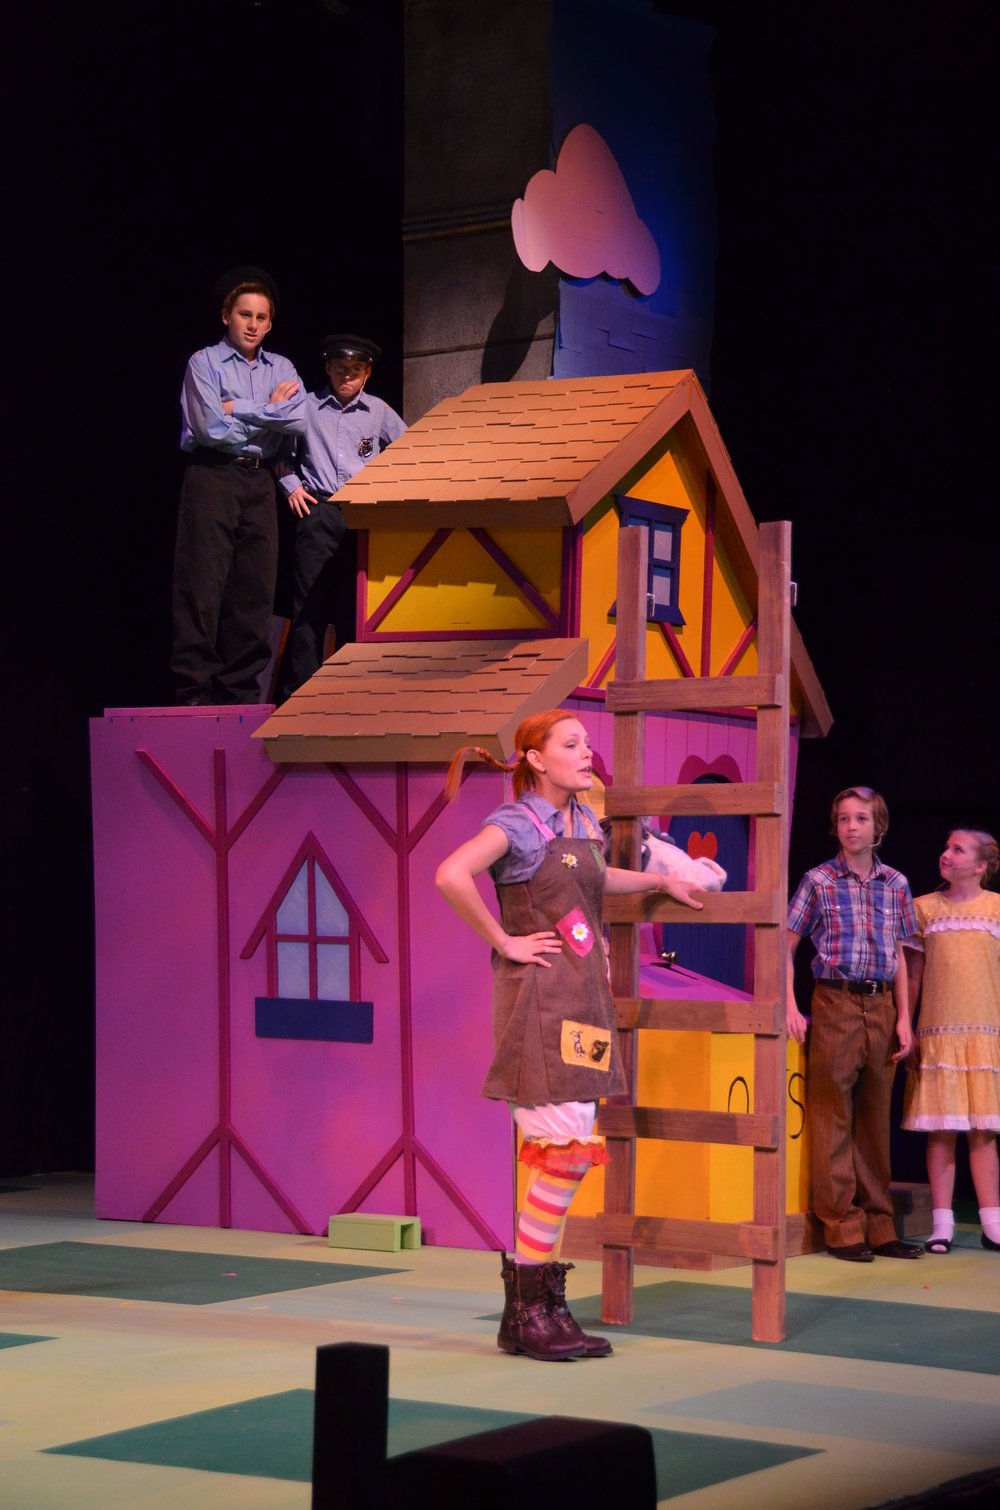 pippi-longstocking-production-13_11842347145_o.jpg